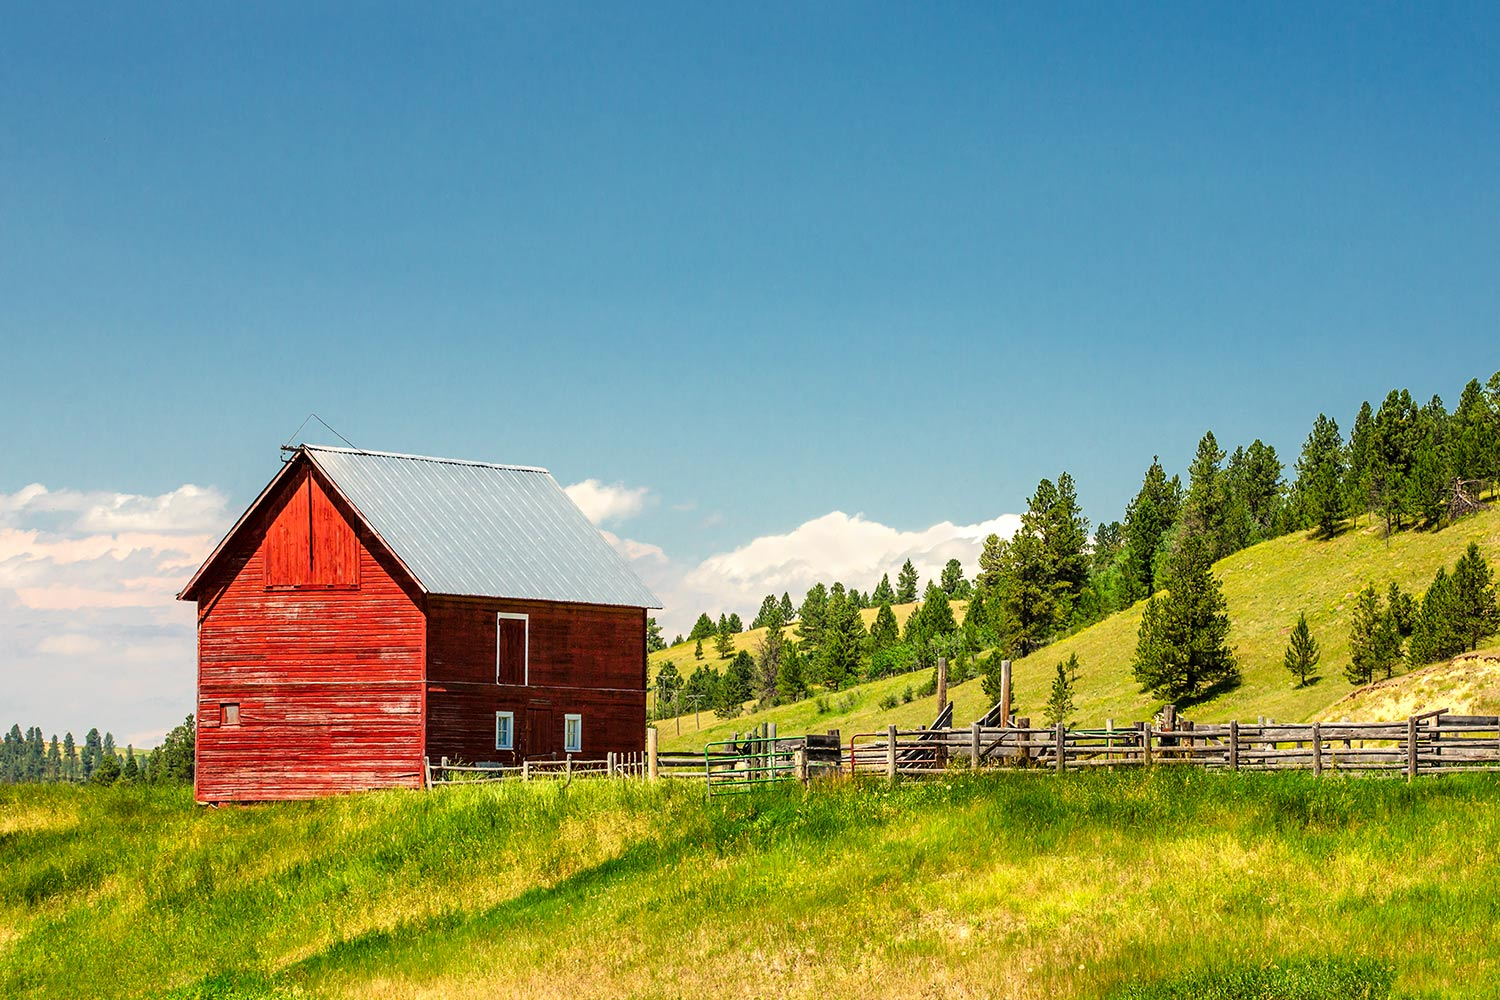 A small red shed on a ranch in the Snowy Mountains near Forest Grove, Montana.  → Buy a Print  or   License Photo